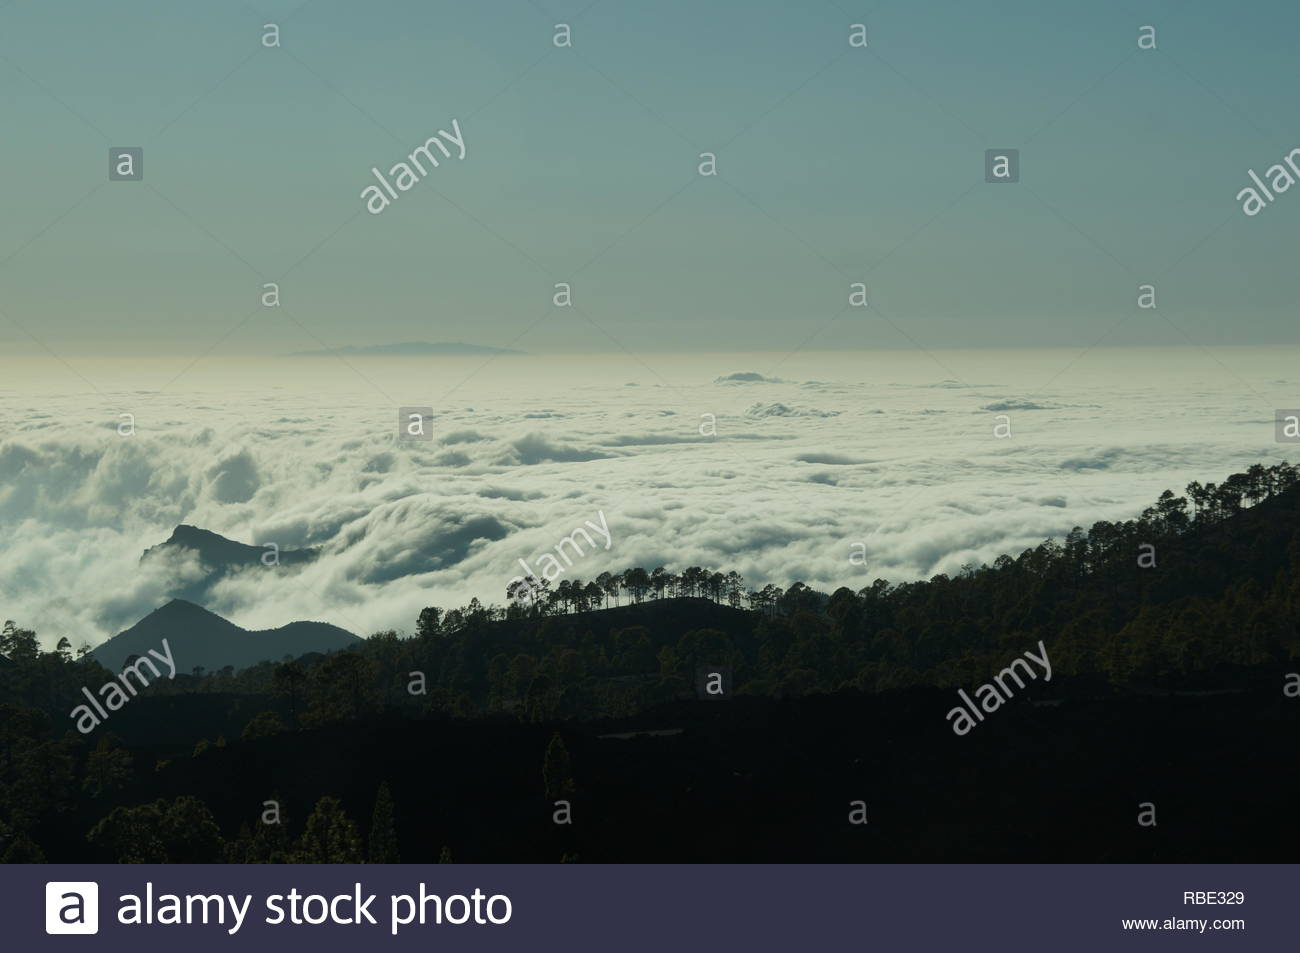 Wonderful view over the clouds in enigmatic light from the mountains - Stock Image